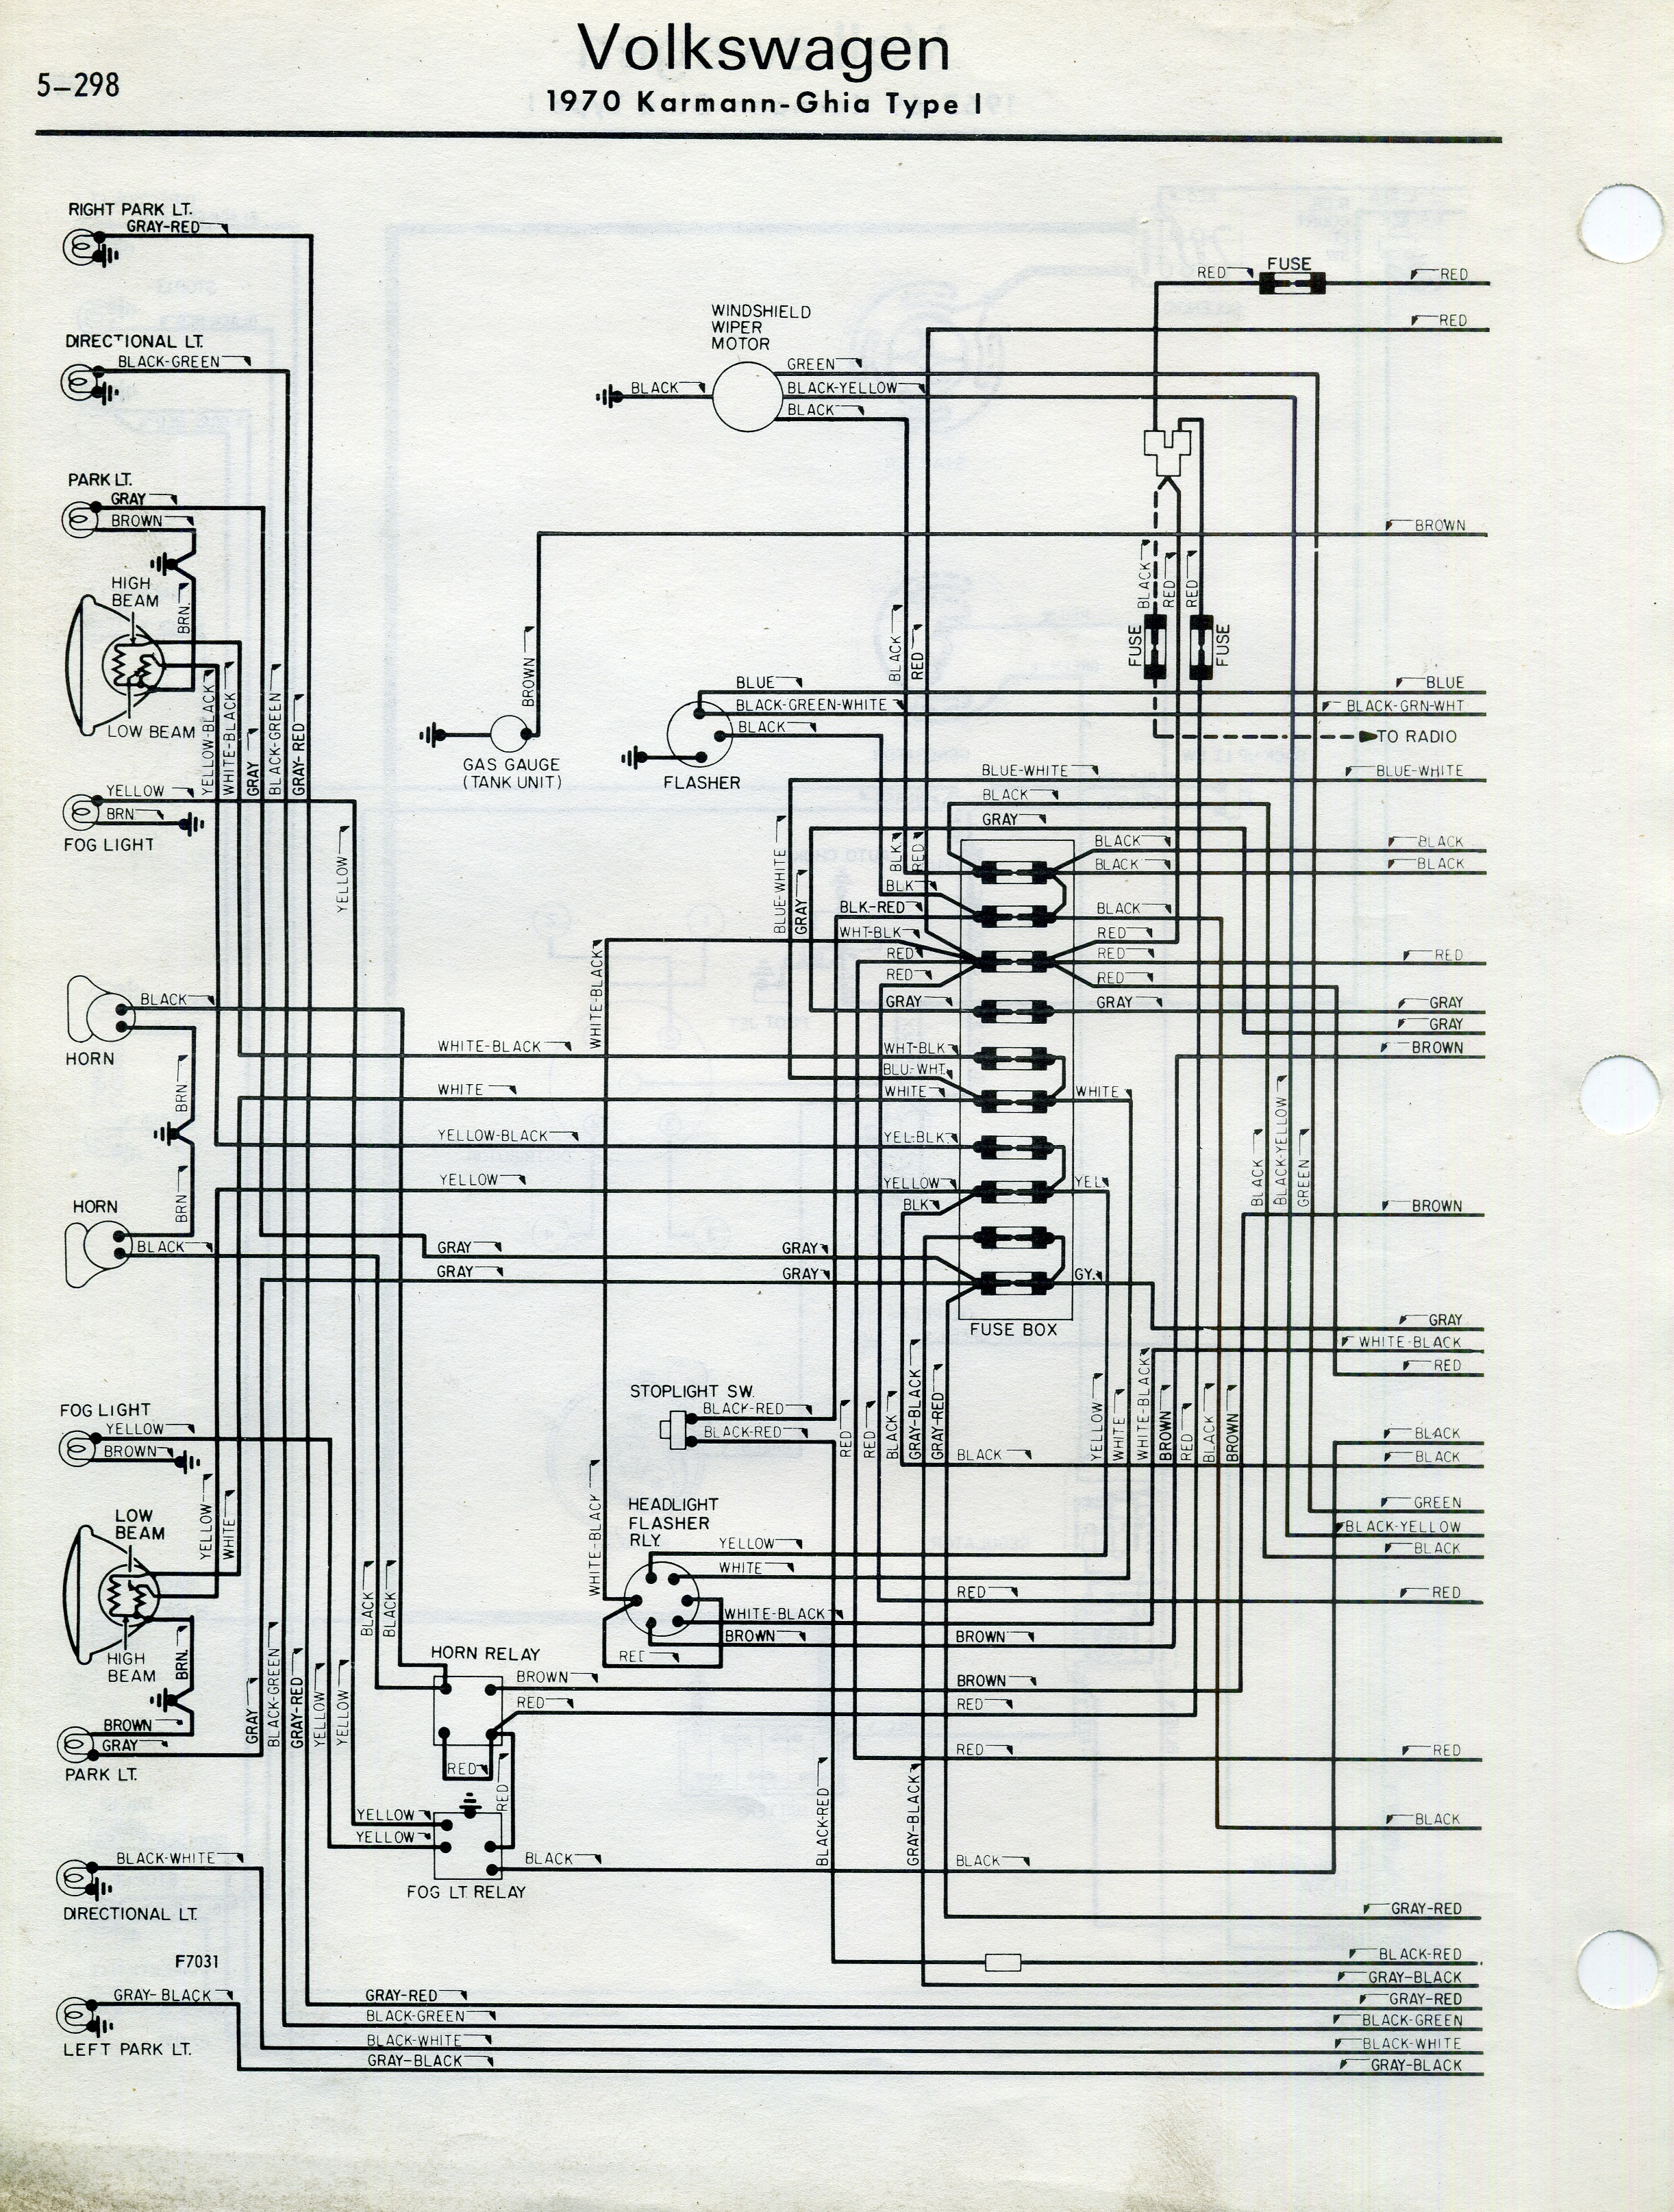 1973 vw karmann ghia wiring diagram